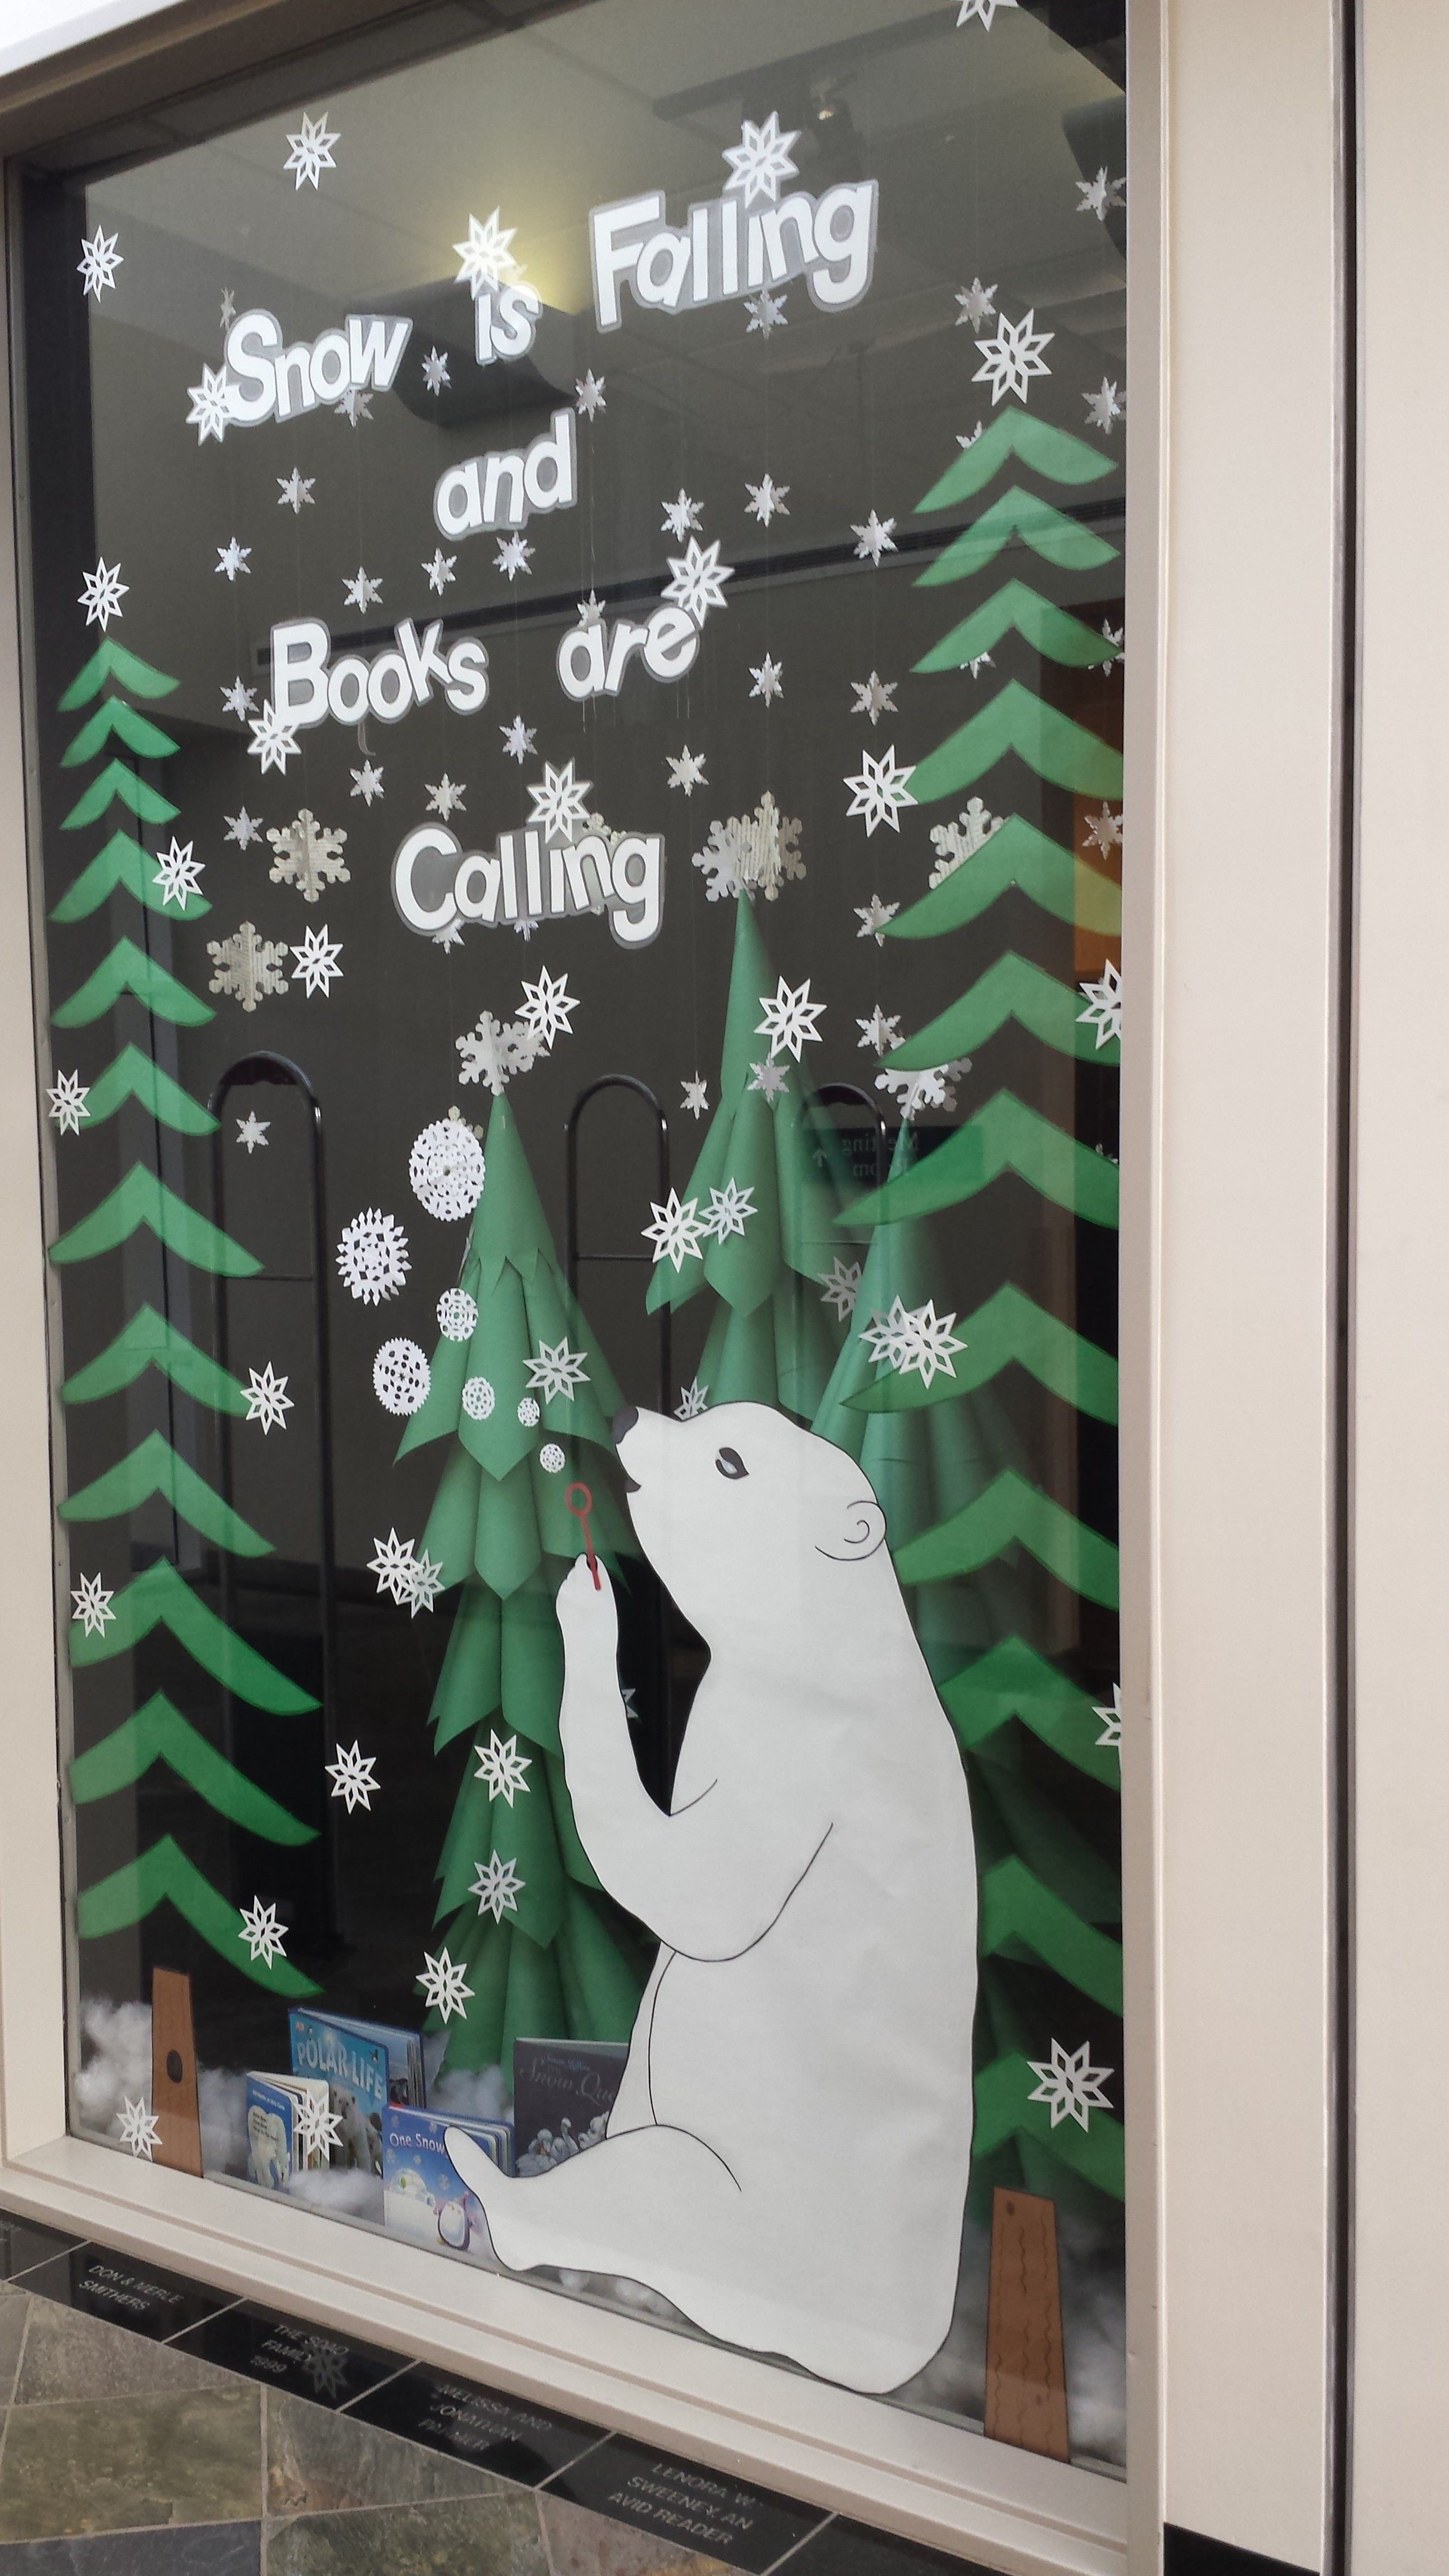 Literature Classroom Decor ~ Snow is falling and books are calling library display for